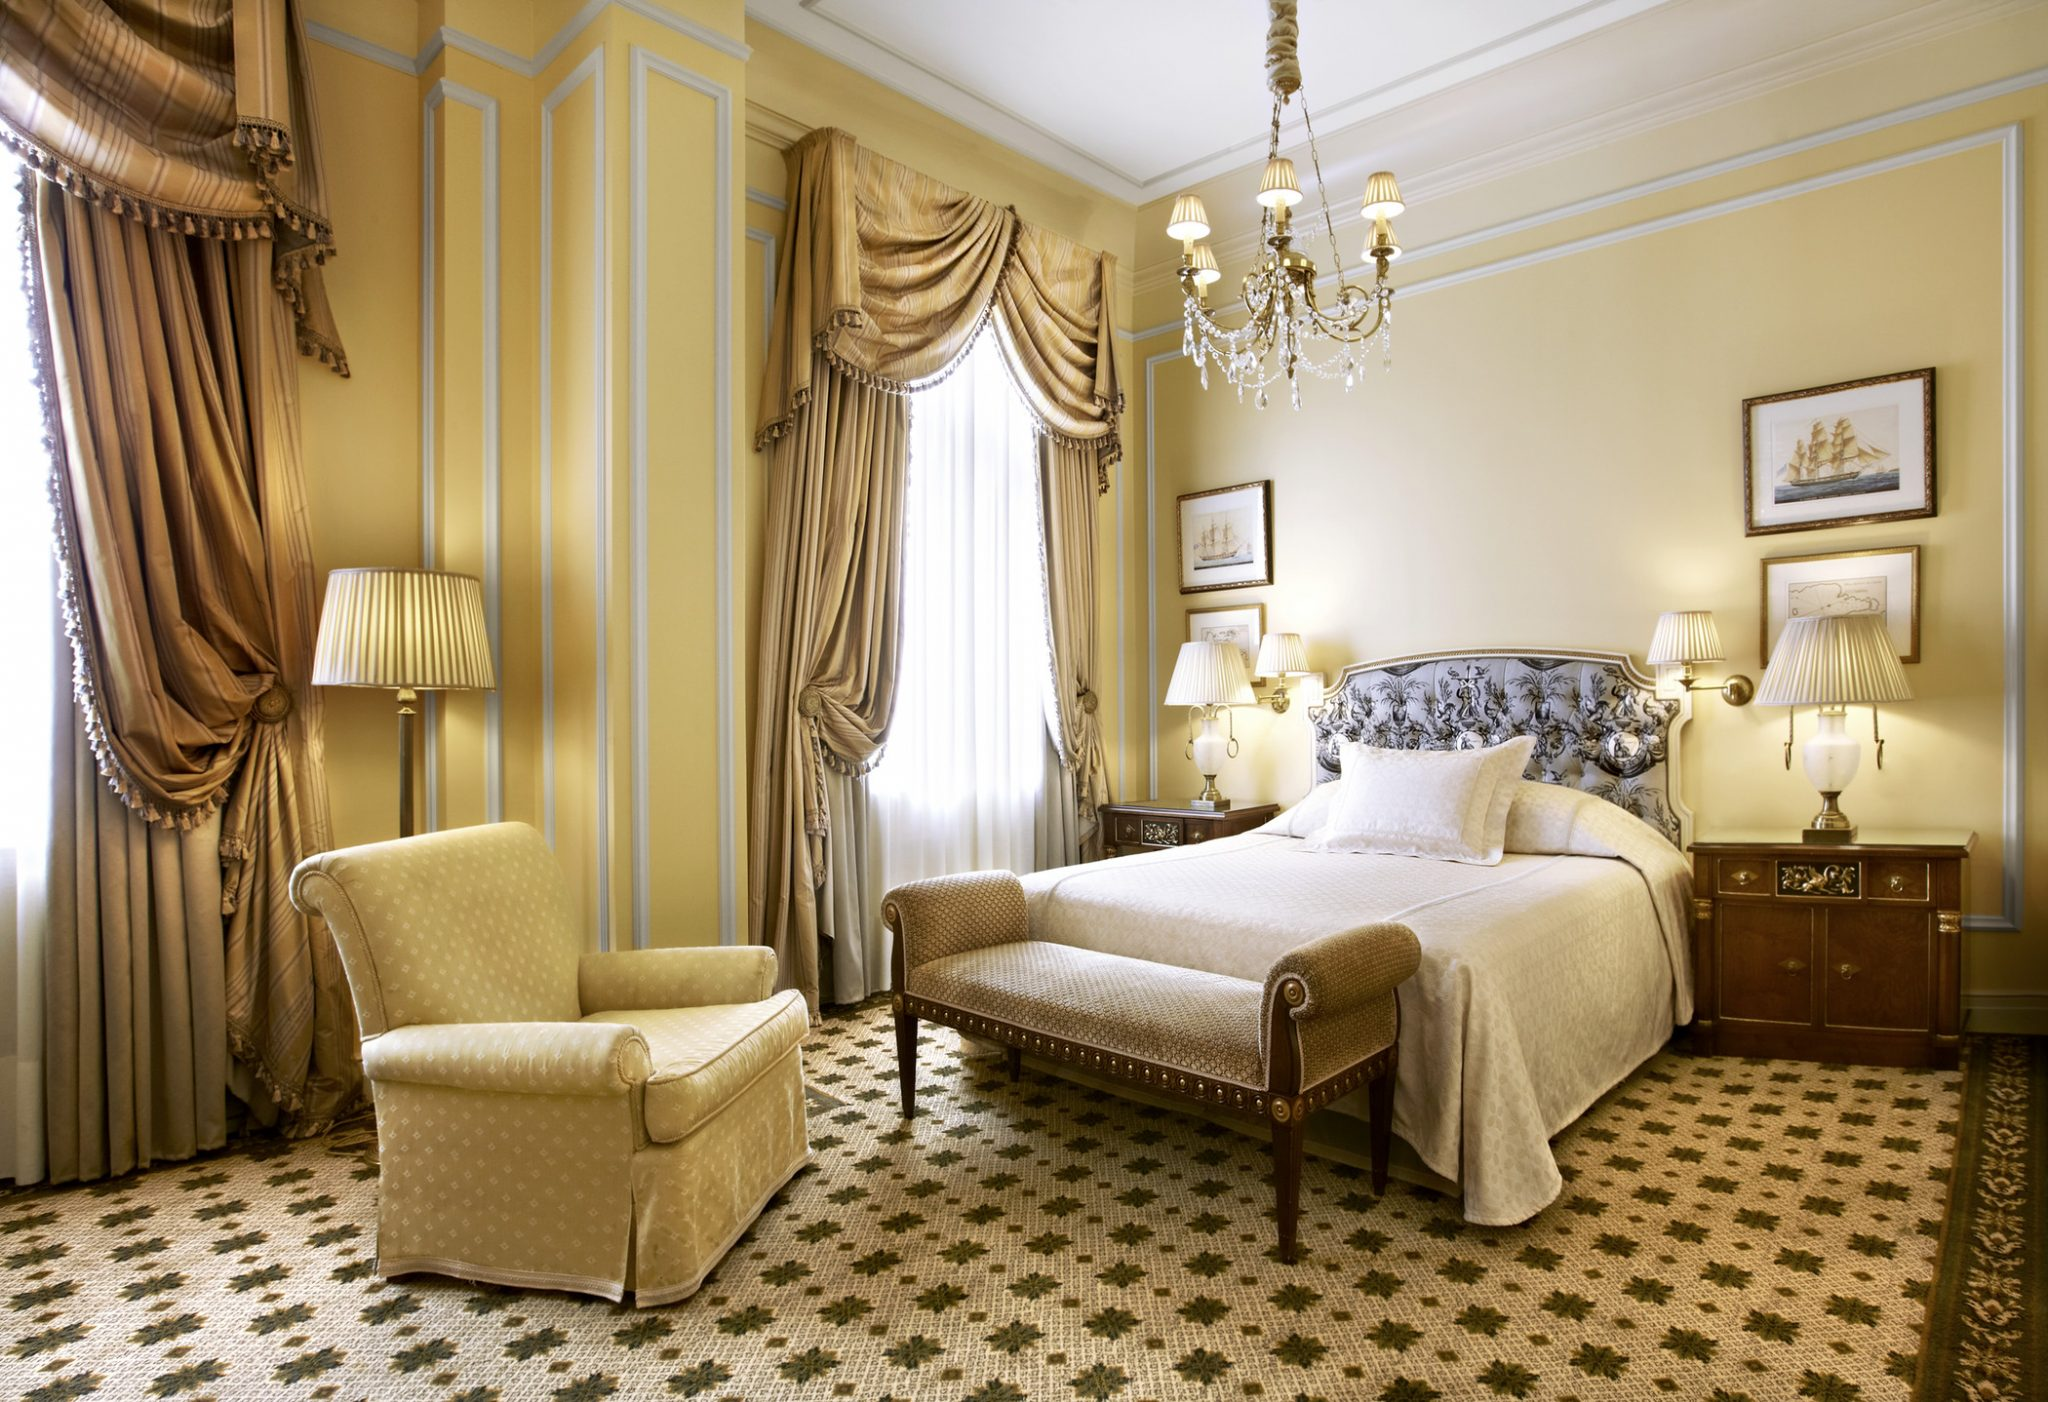 rooms at Hotel Grande Bretagne, Athens, Greece